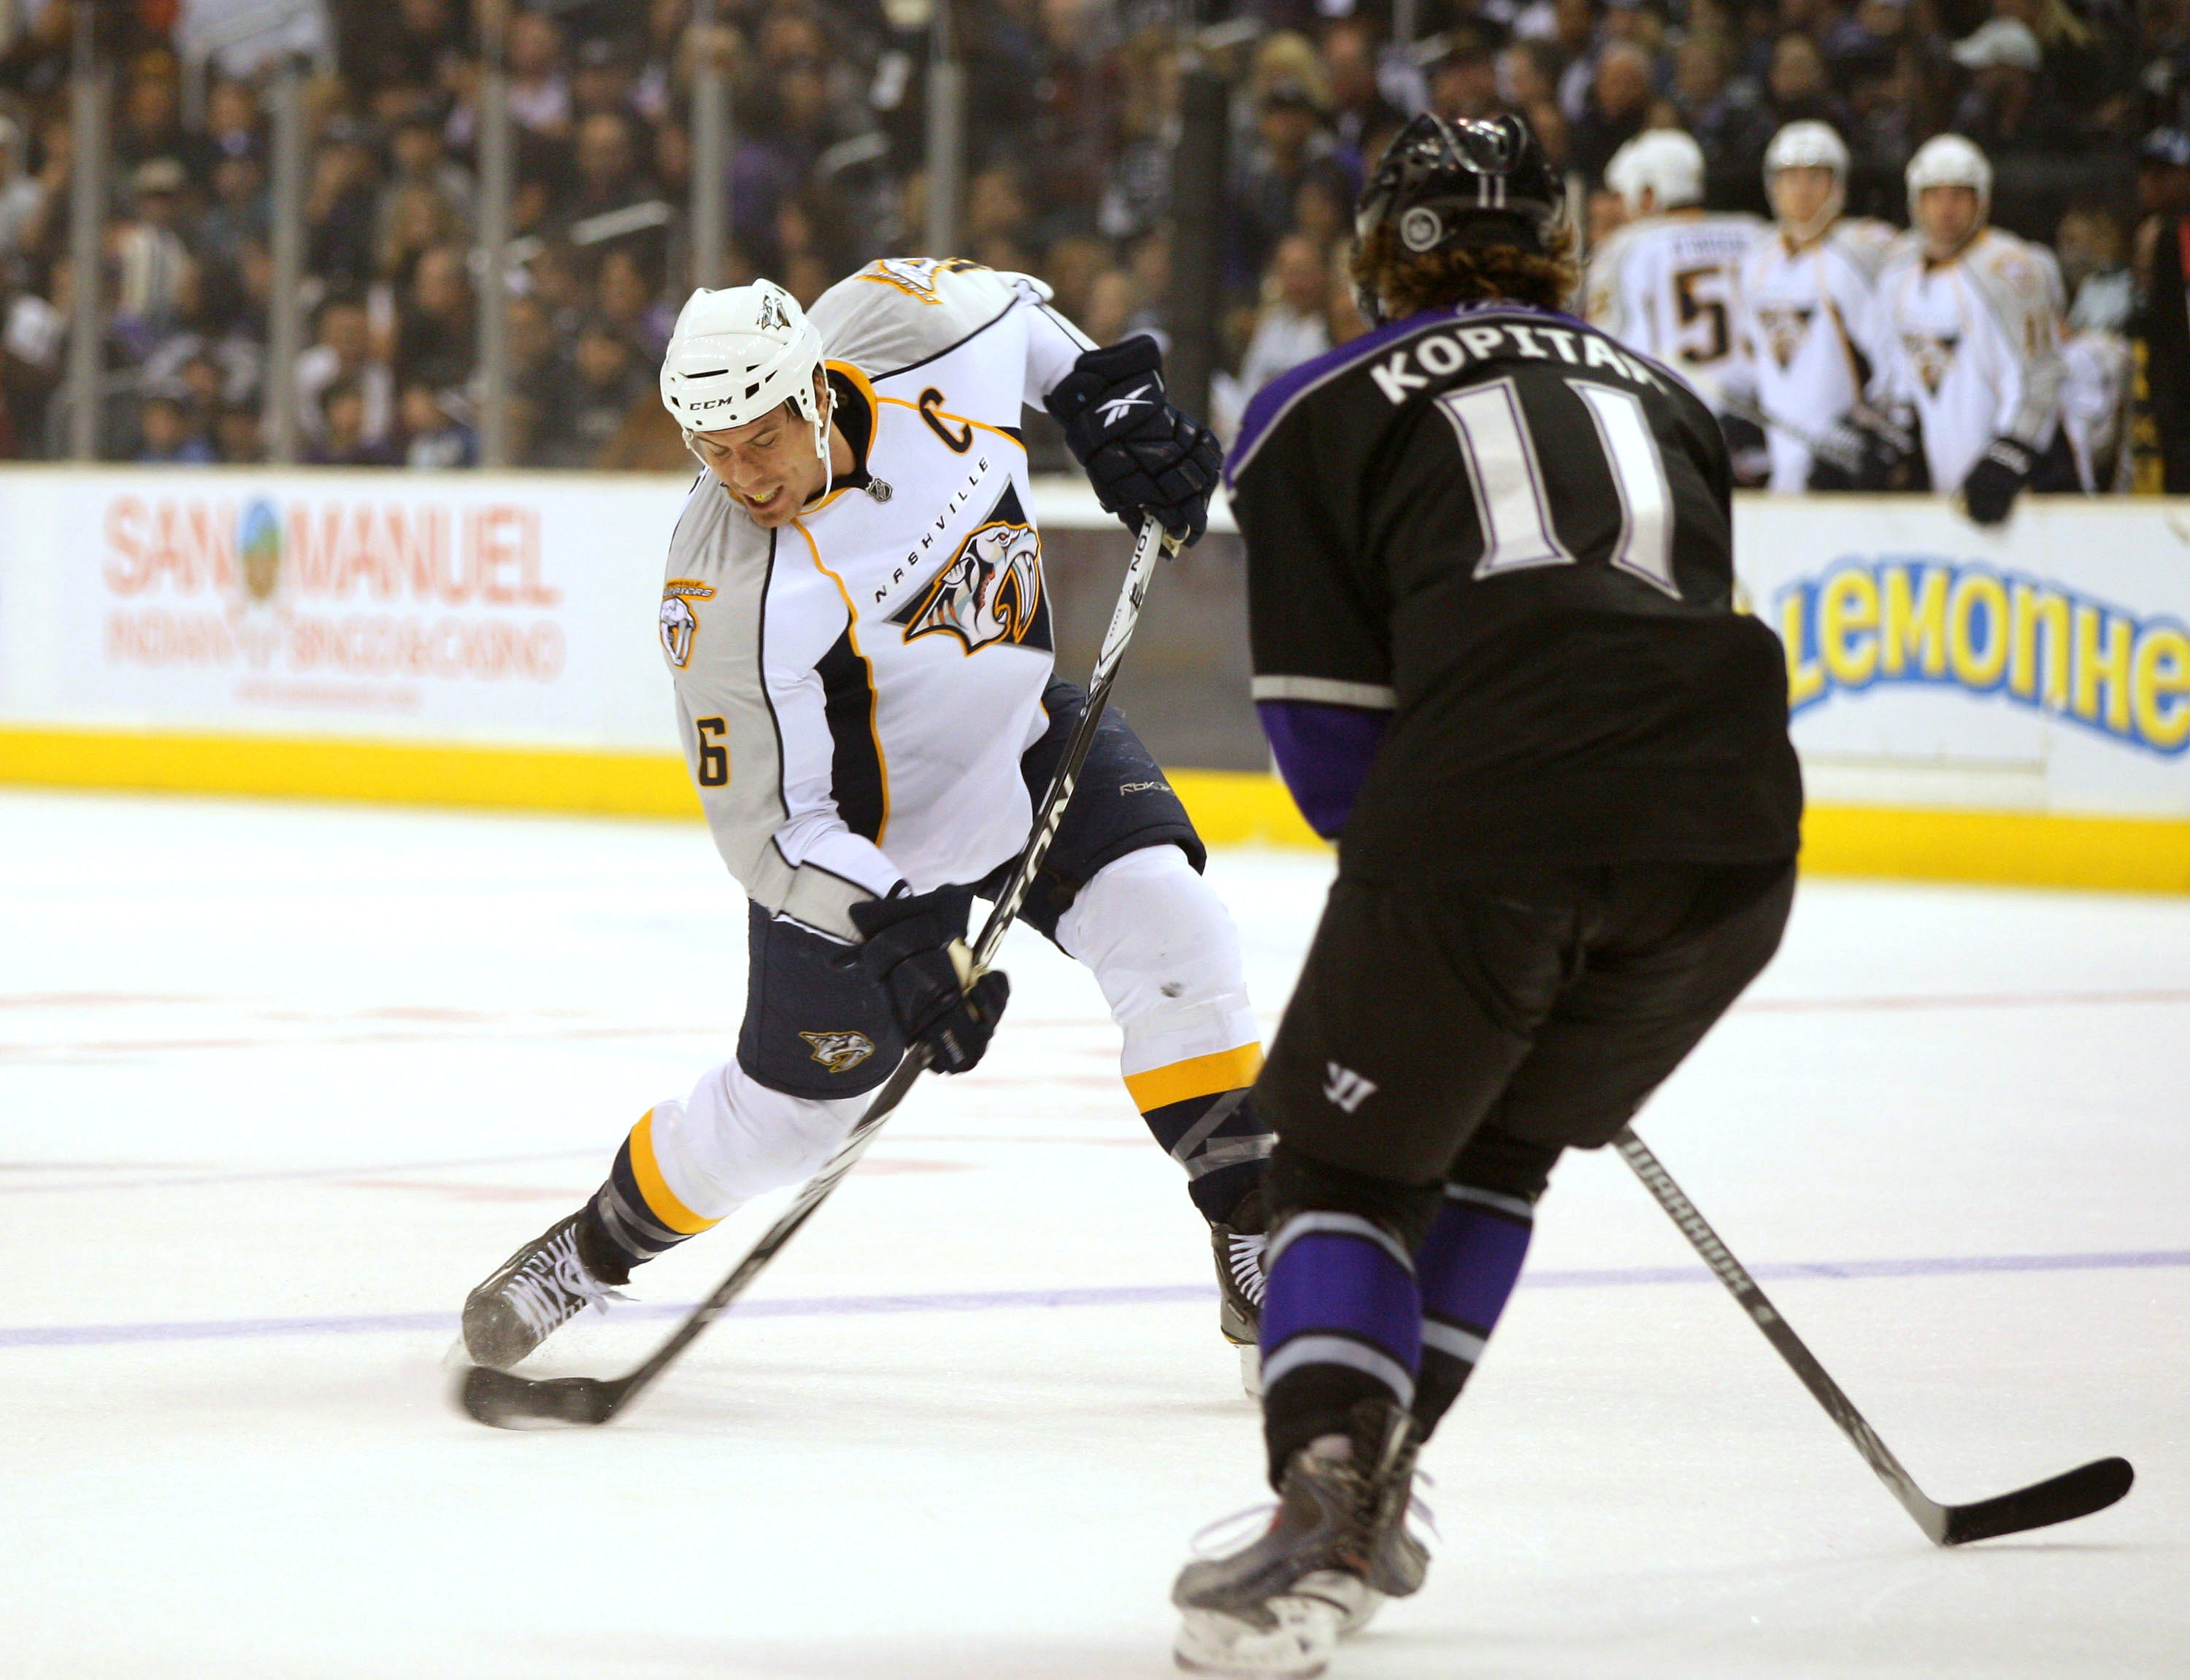 LOS ANGELES, CA - NOVEMBER 06:  Shea Weber #6 of the Nashville Predators shoots from the point under pressure from Anze Kopitar #11 of the Los Angeles Kings during the NHL game at Staples Center on November 6, 2010 in Los Angeles, California. The Kings de